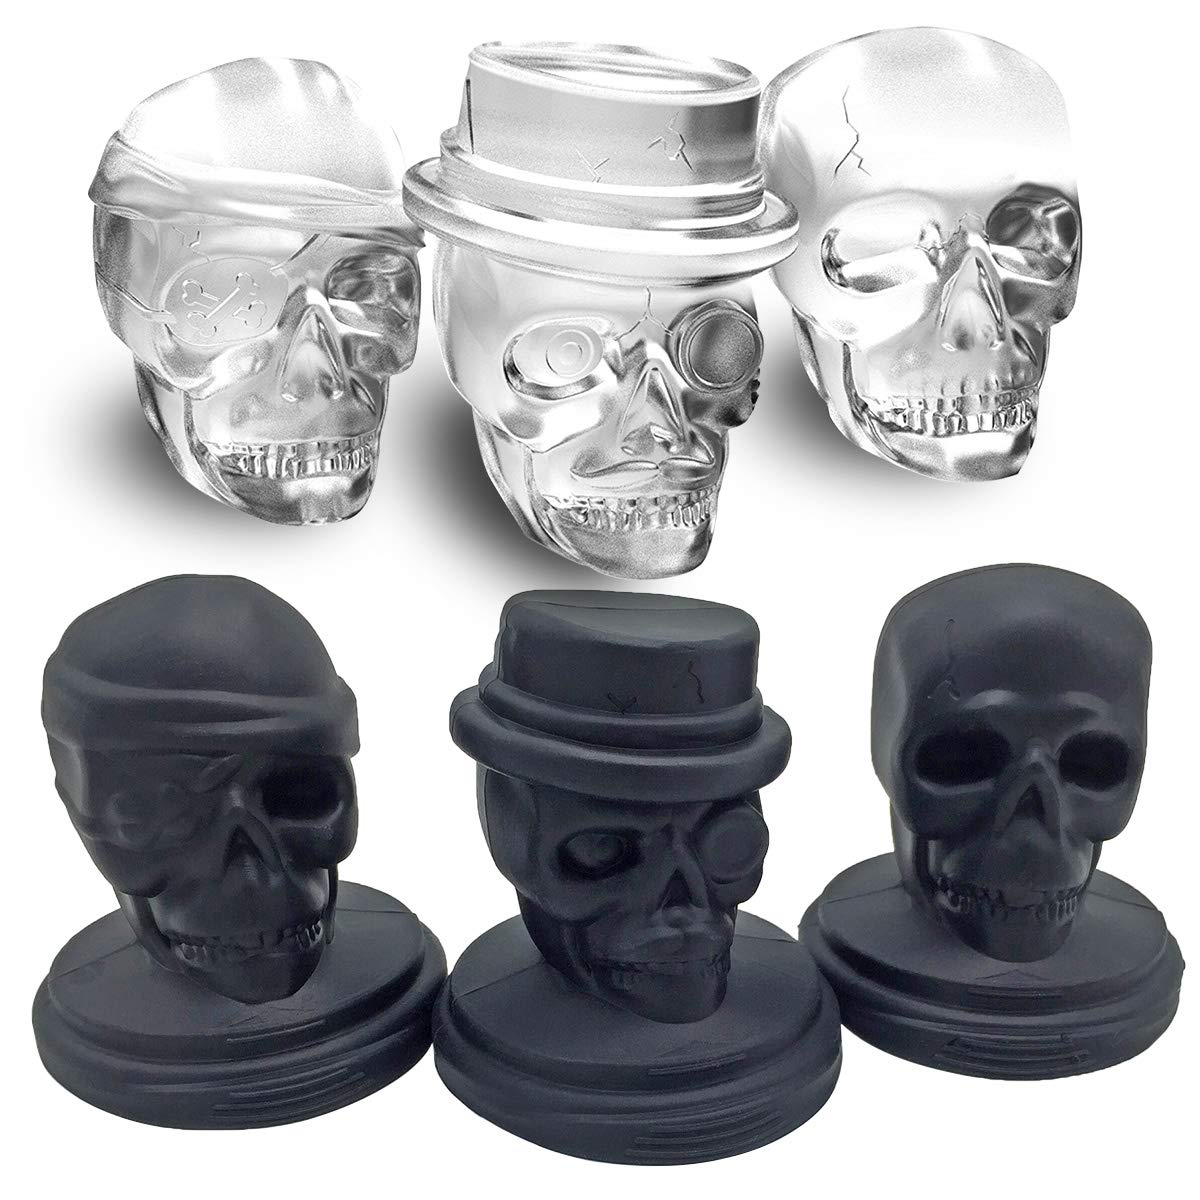 Kidac 3D Skull Ice Mold Set Novelty Giant Food Grade Silicone Skull Ice Cube Mold BPA Free (1 Set of 3 different detailed Skull Molds)